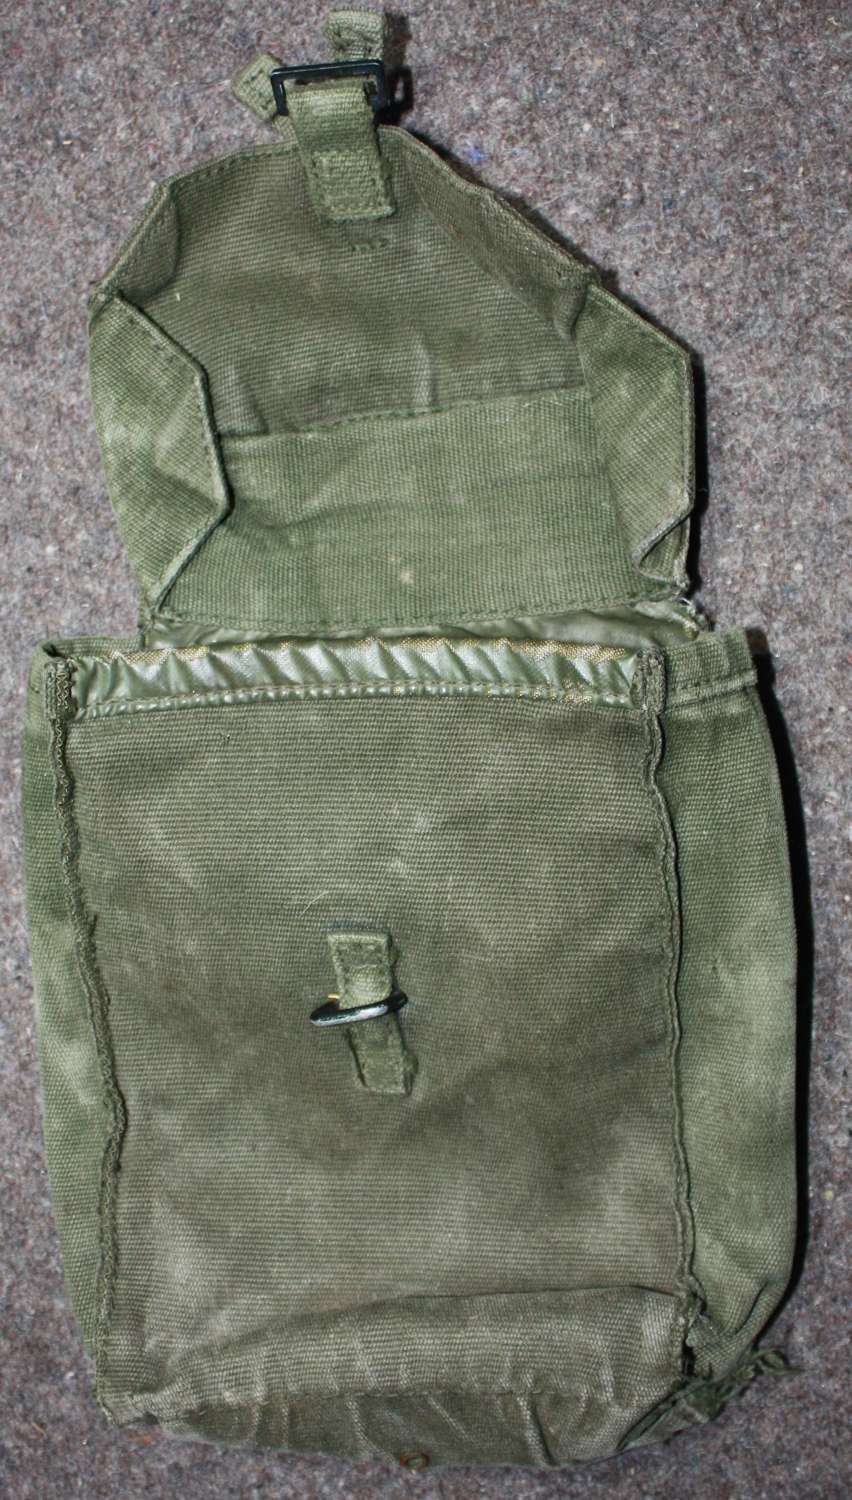 A 1970'S USED SAS ESCAPE AND EVASION POUCH